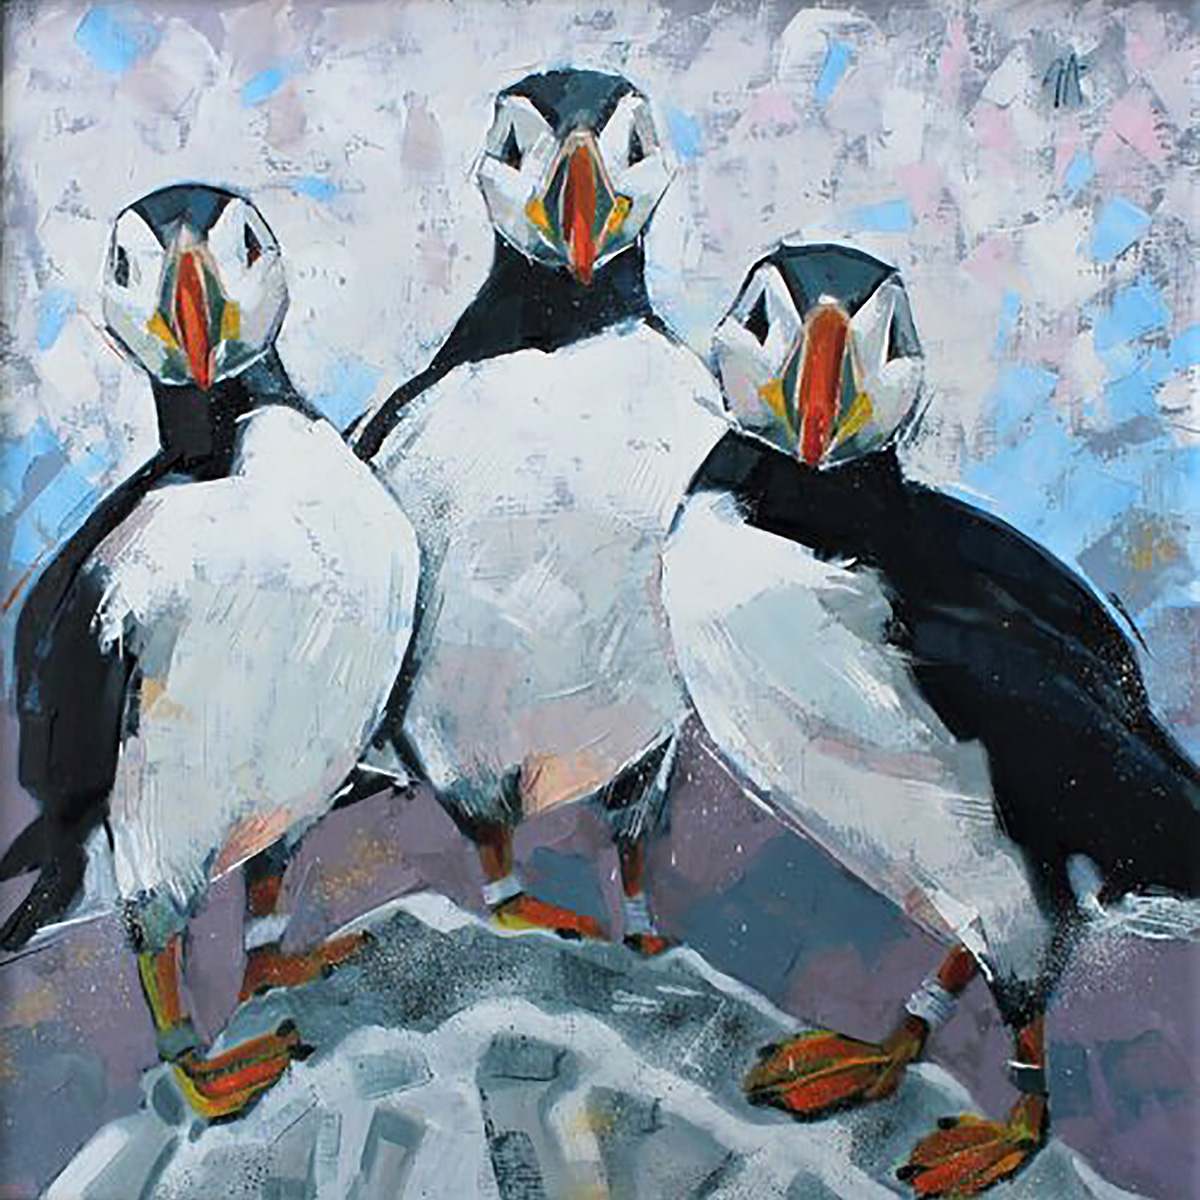 Gwen Adair, 'Improbability of Puffins', oil on canvas